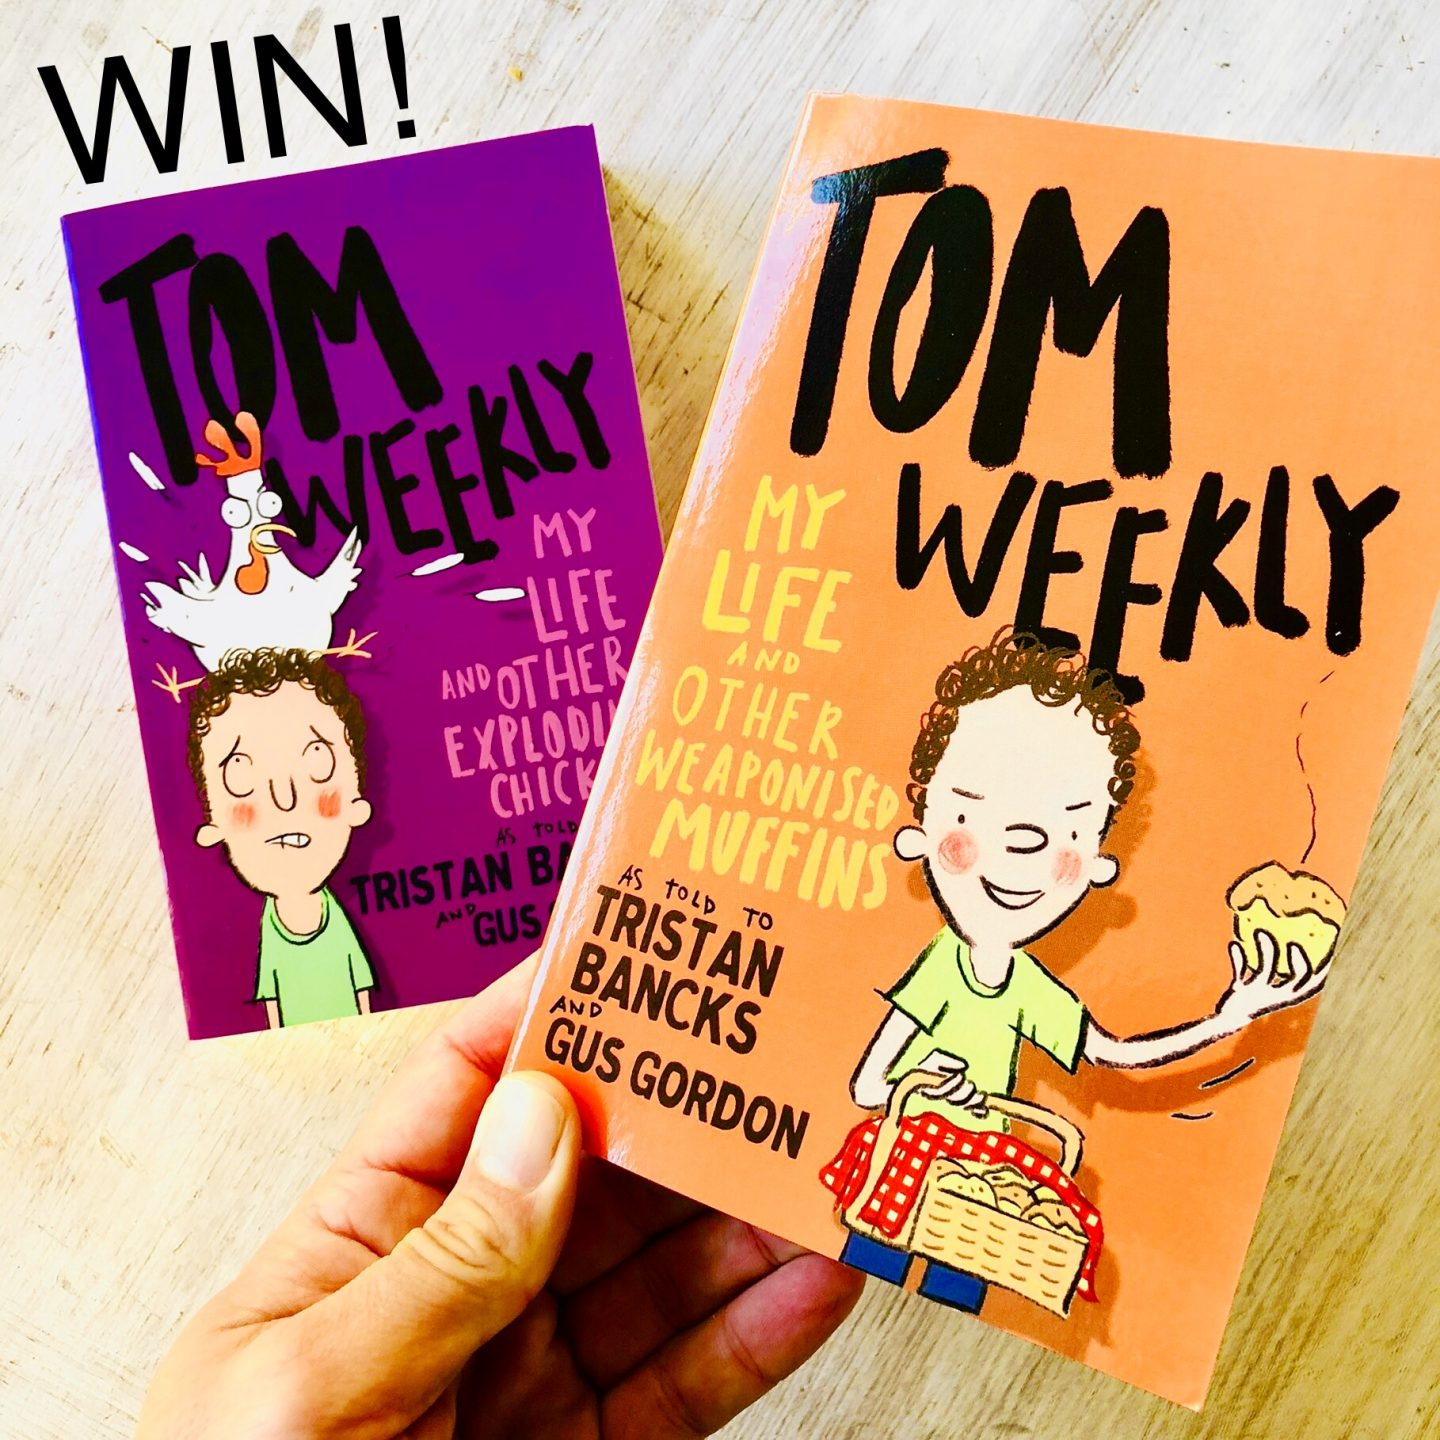 WIN Tom Weekly books